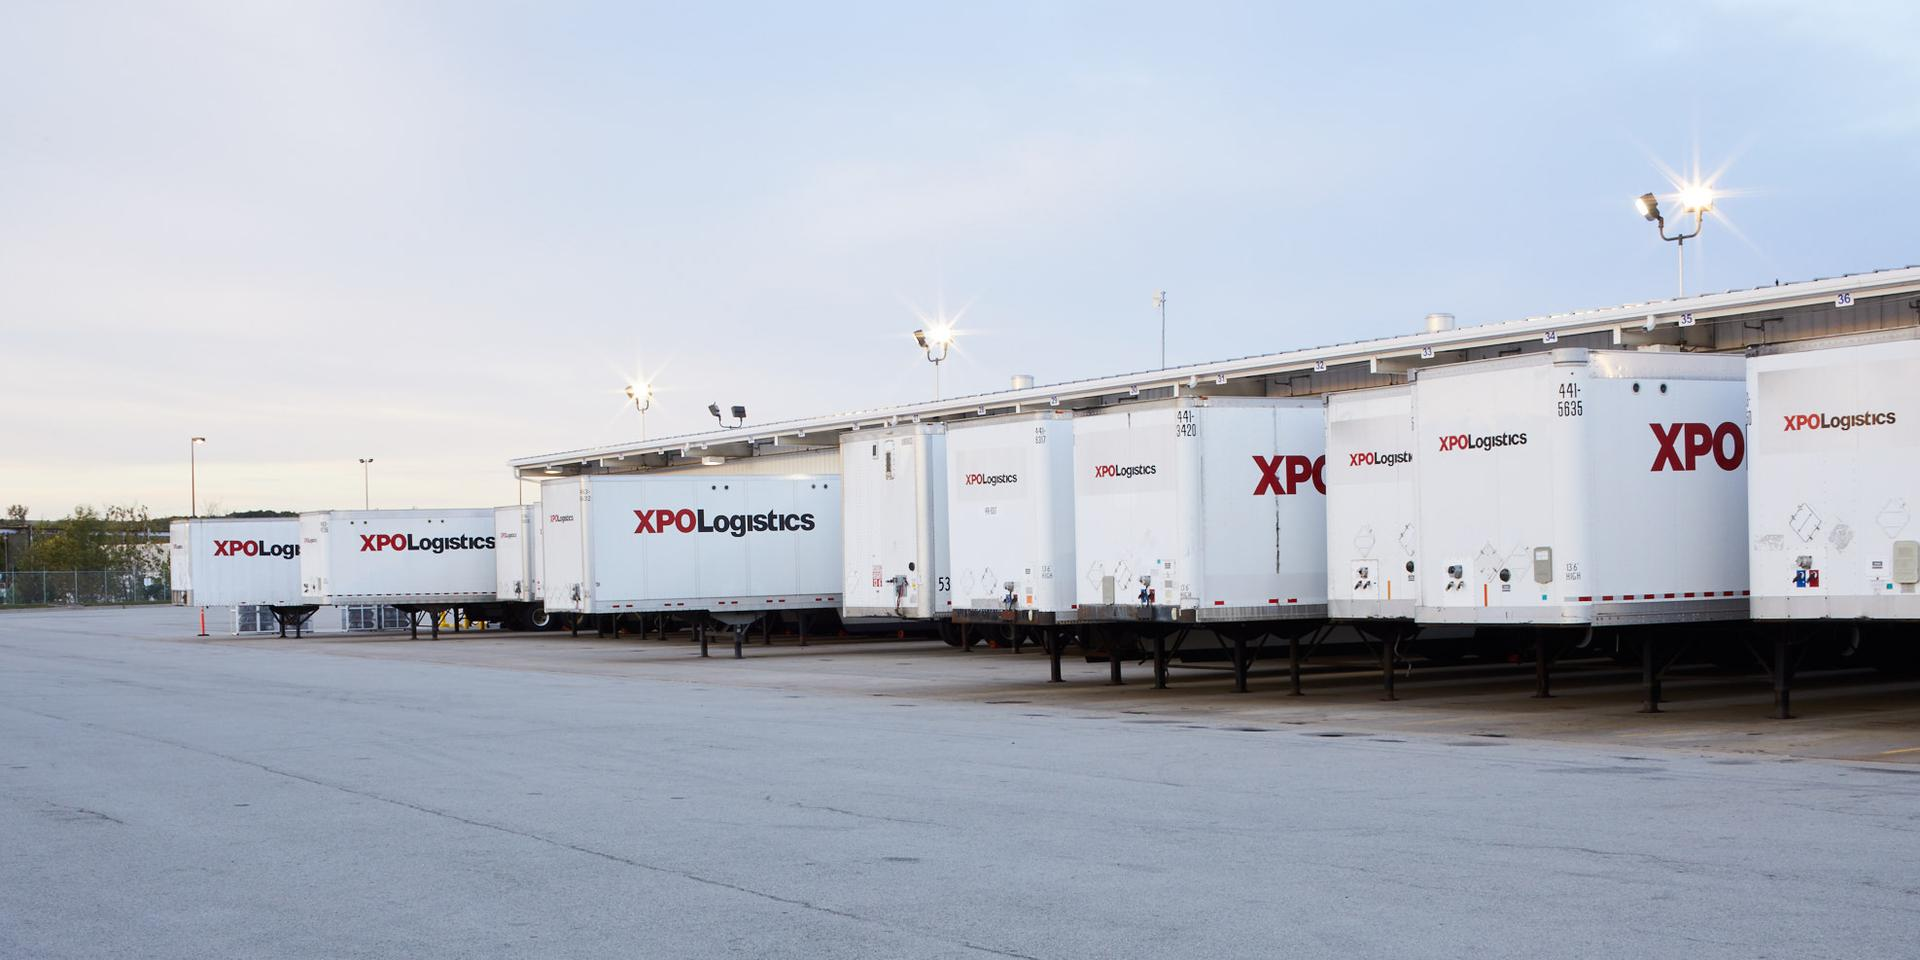 XPO trailers at terminal